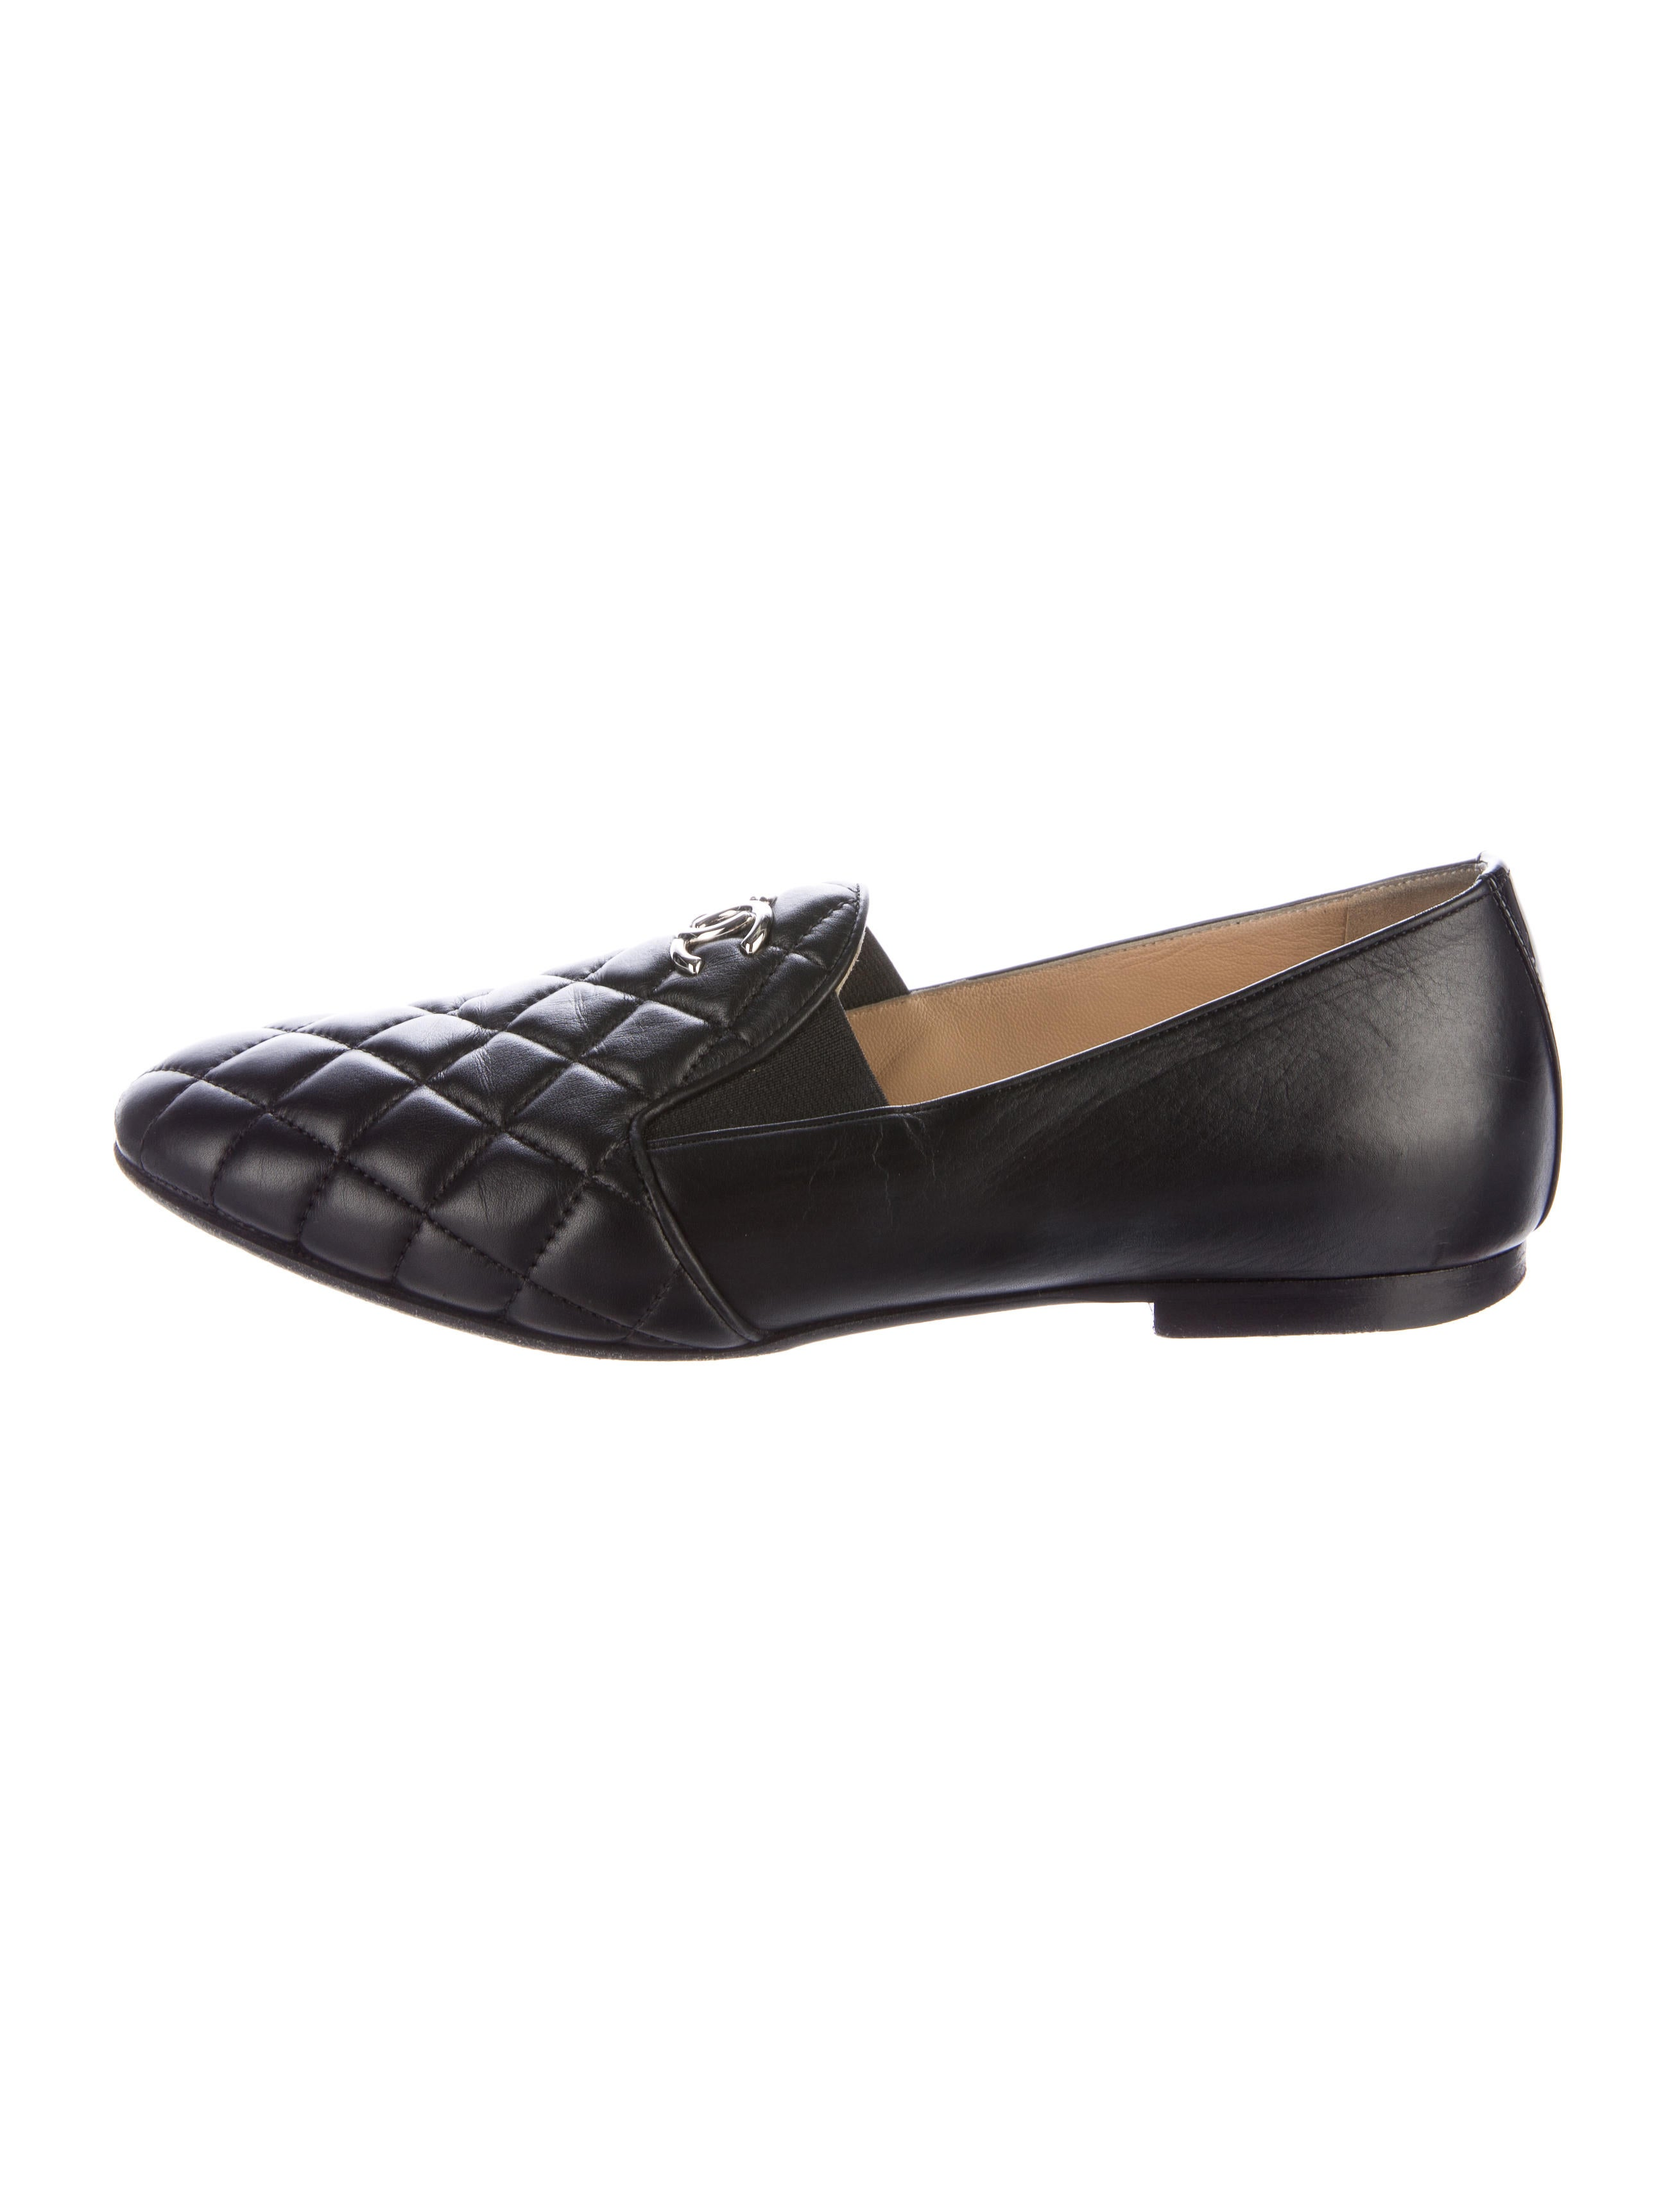 Chanel Quilted CC Loafers - Shoes - CHA179873 | The RealReal